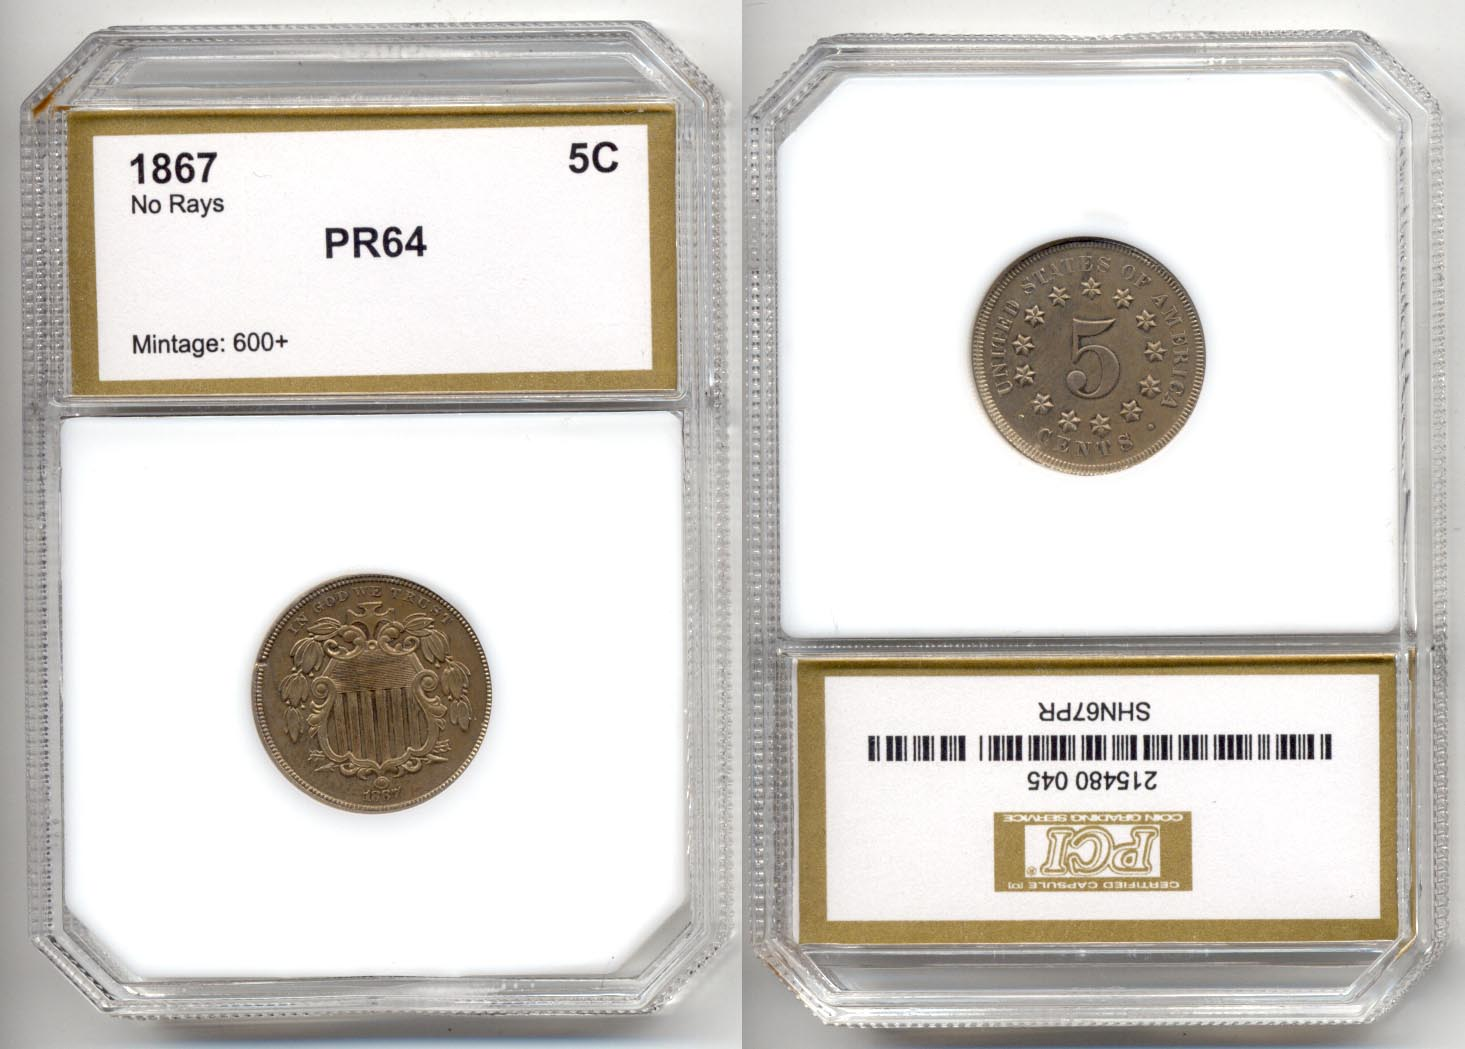 1867 No Rays Shield Nickel PCI Proof-64